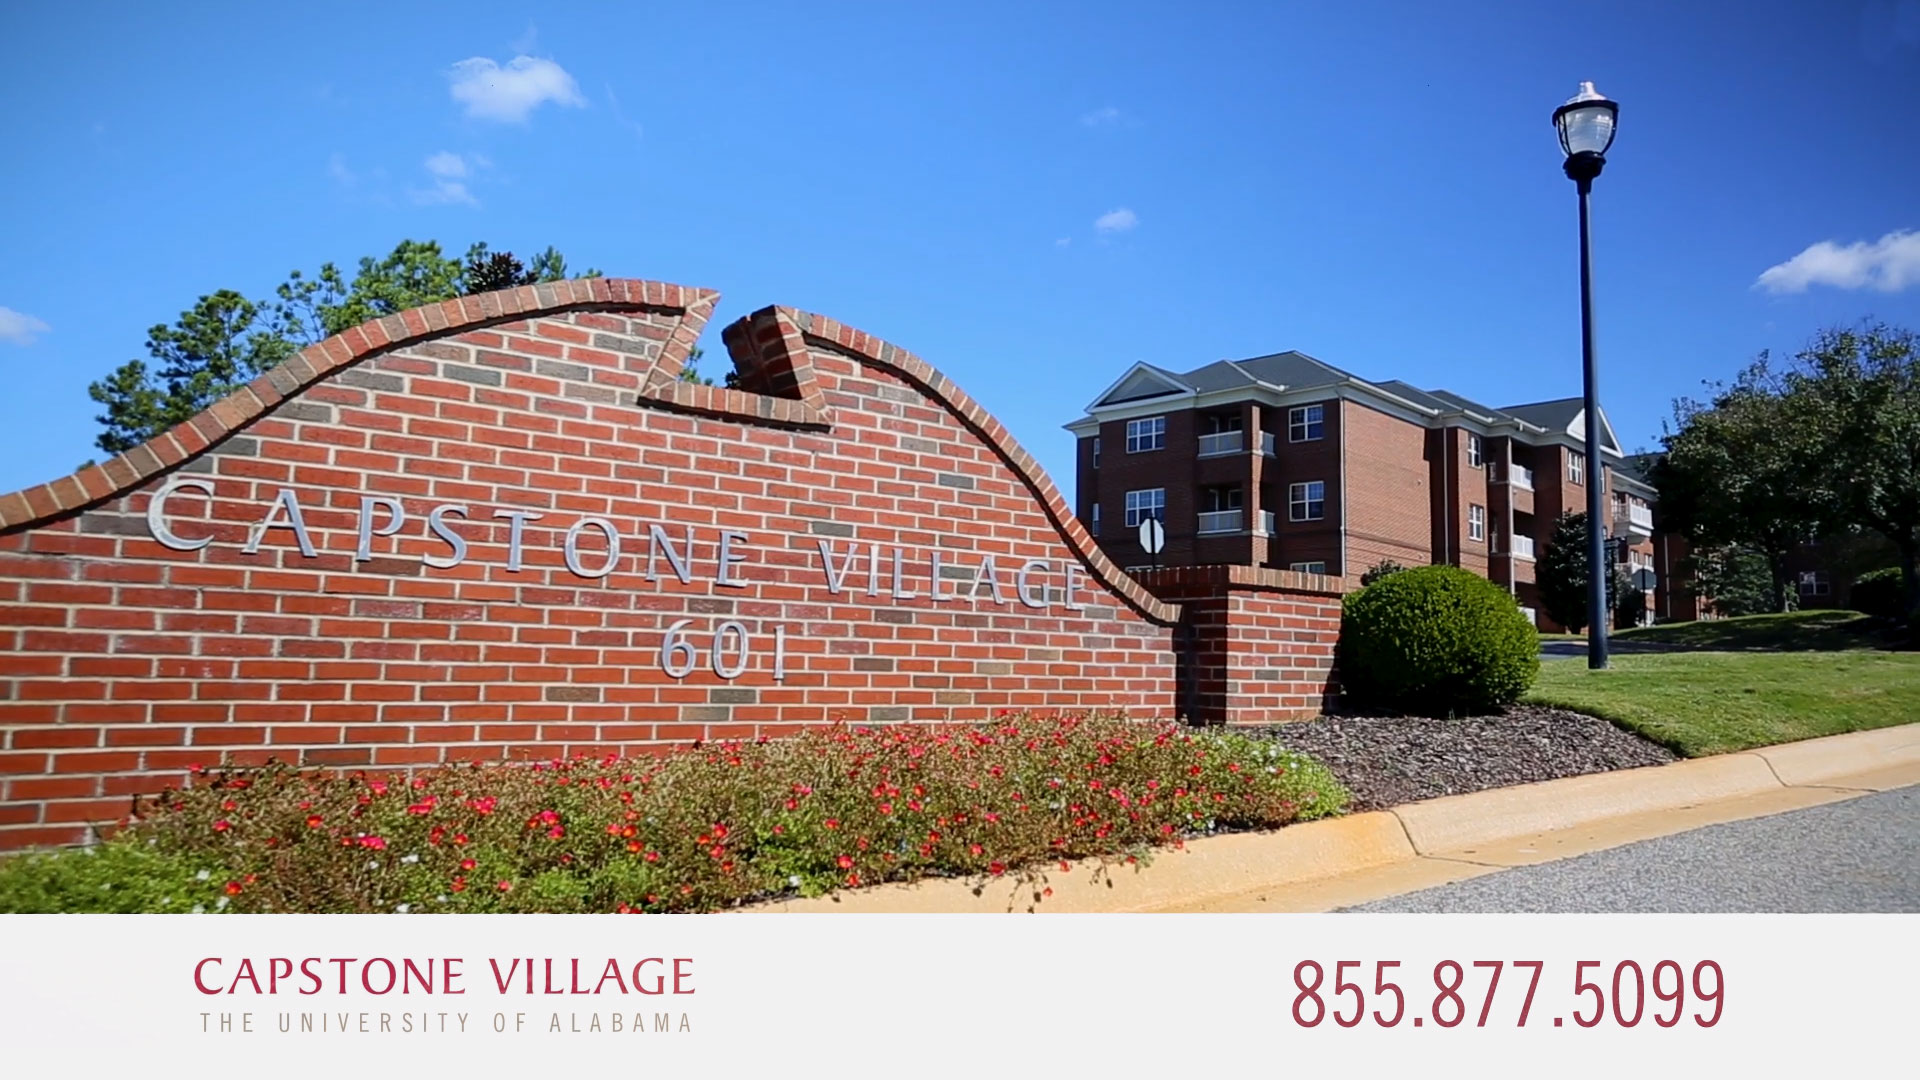 Capstone Village Sign